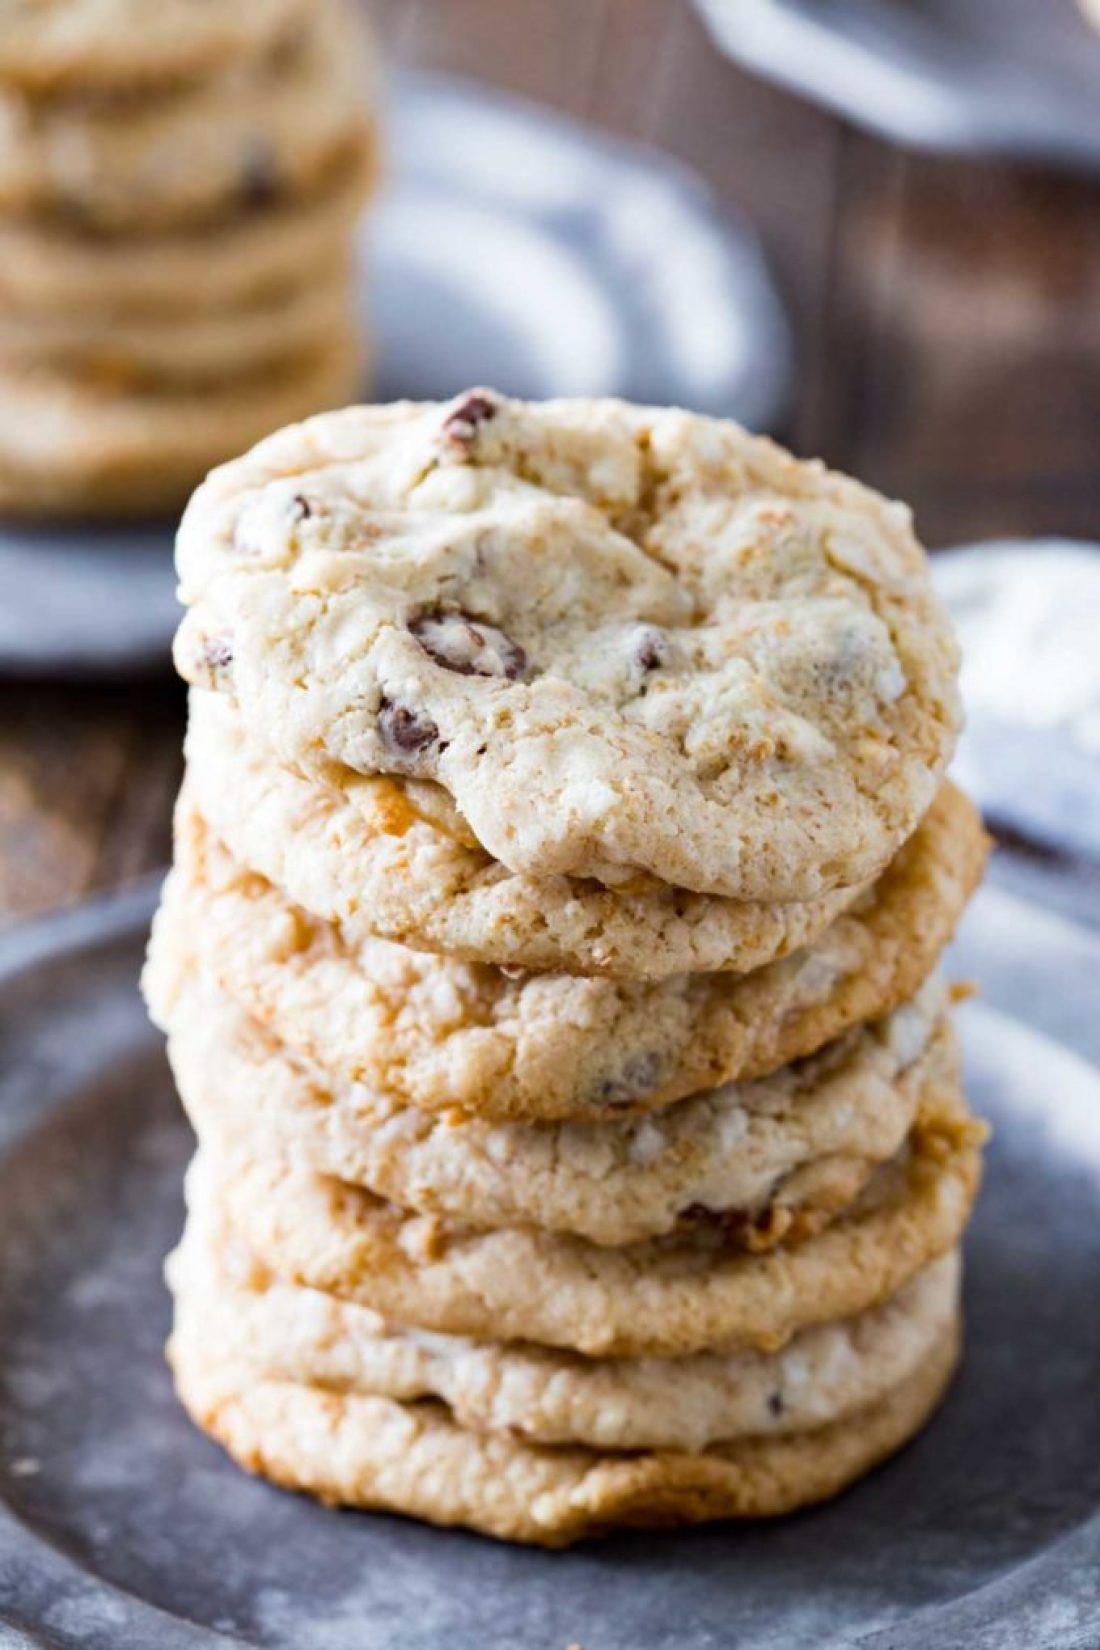 Delicious and easy graham cracker chocolate chip cookies